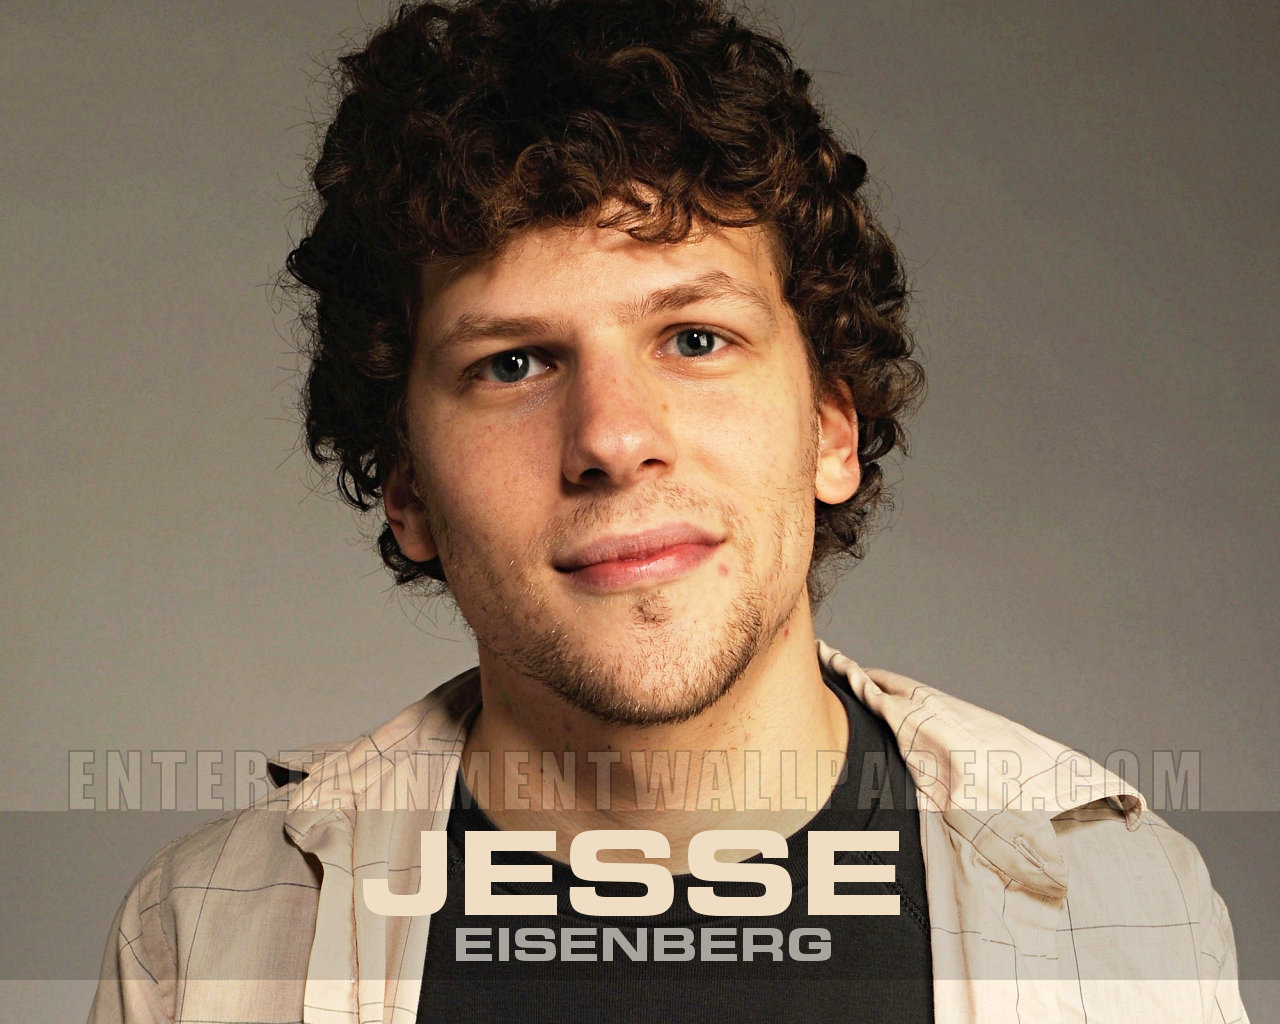 Please check our widescreen hd wallpaper below and bring beauty to your desktop. Jesse Eisenberg Wallpaper